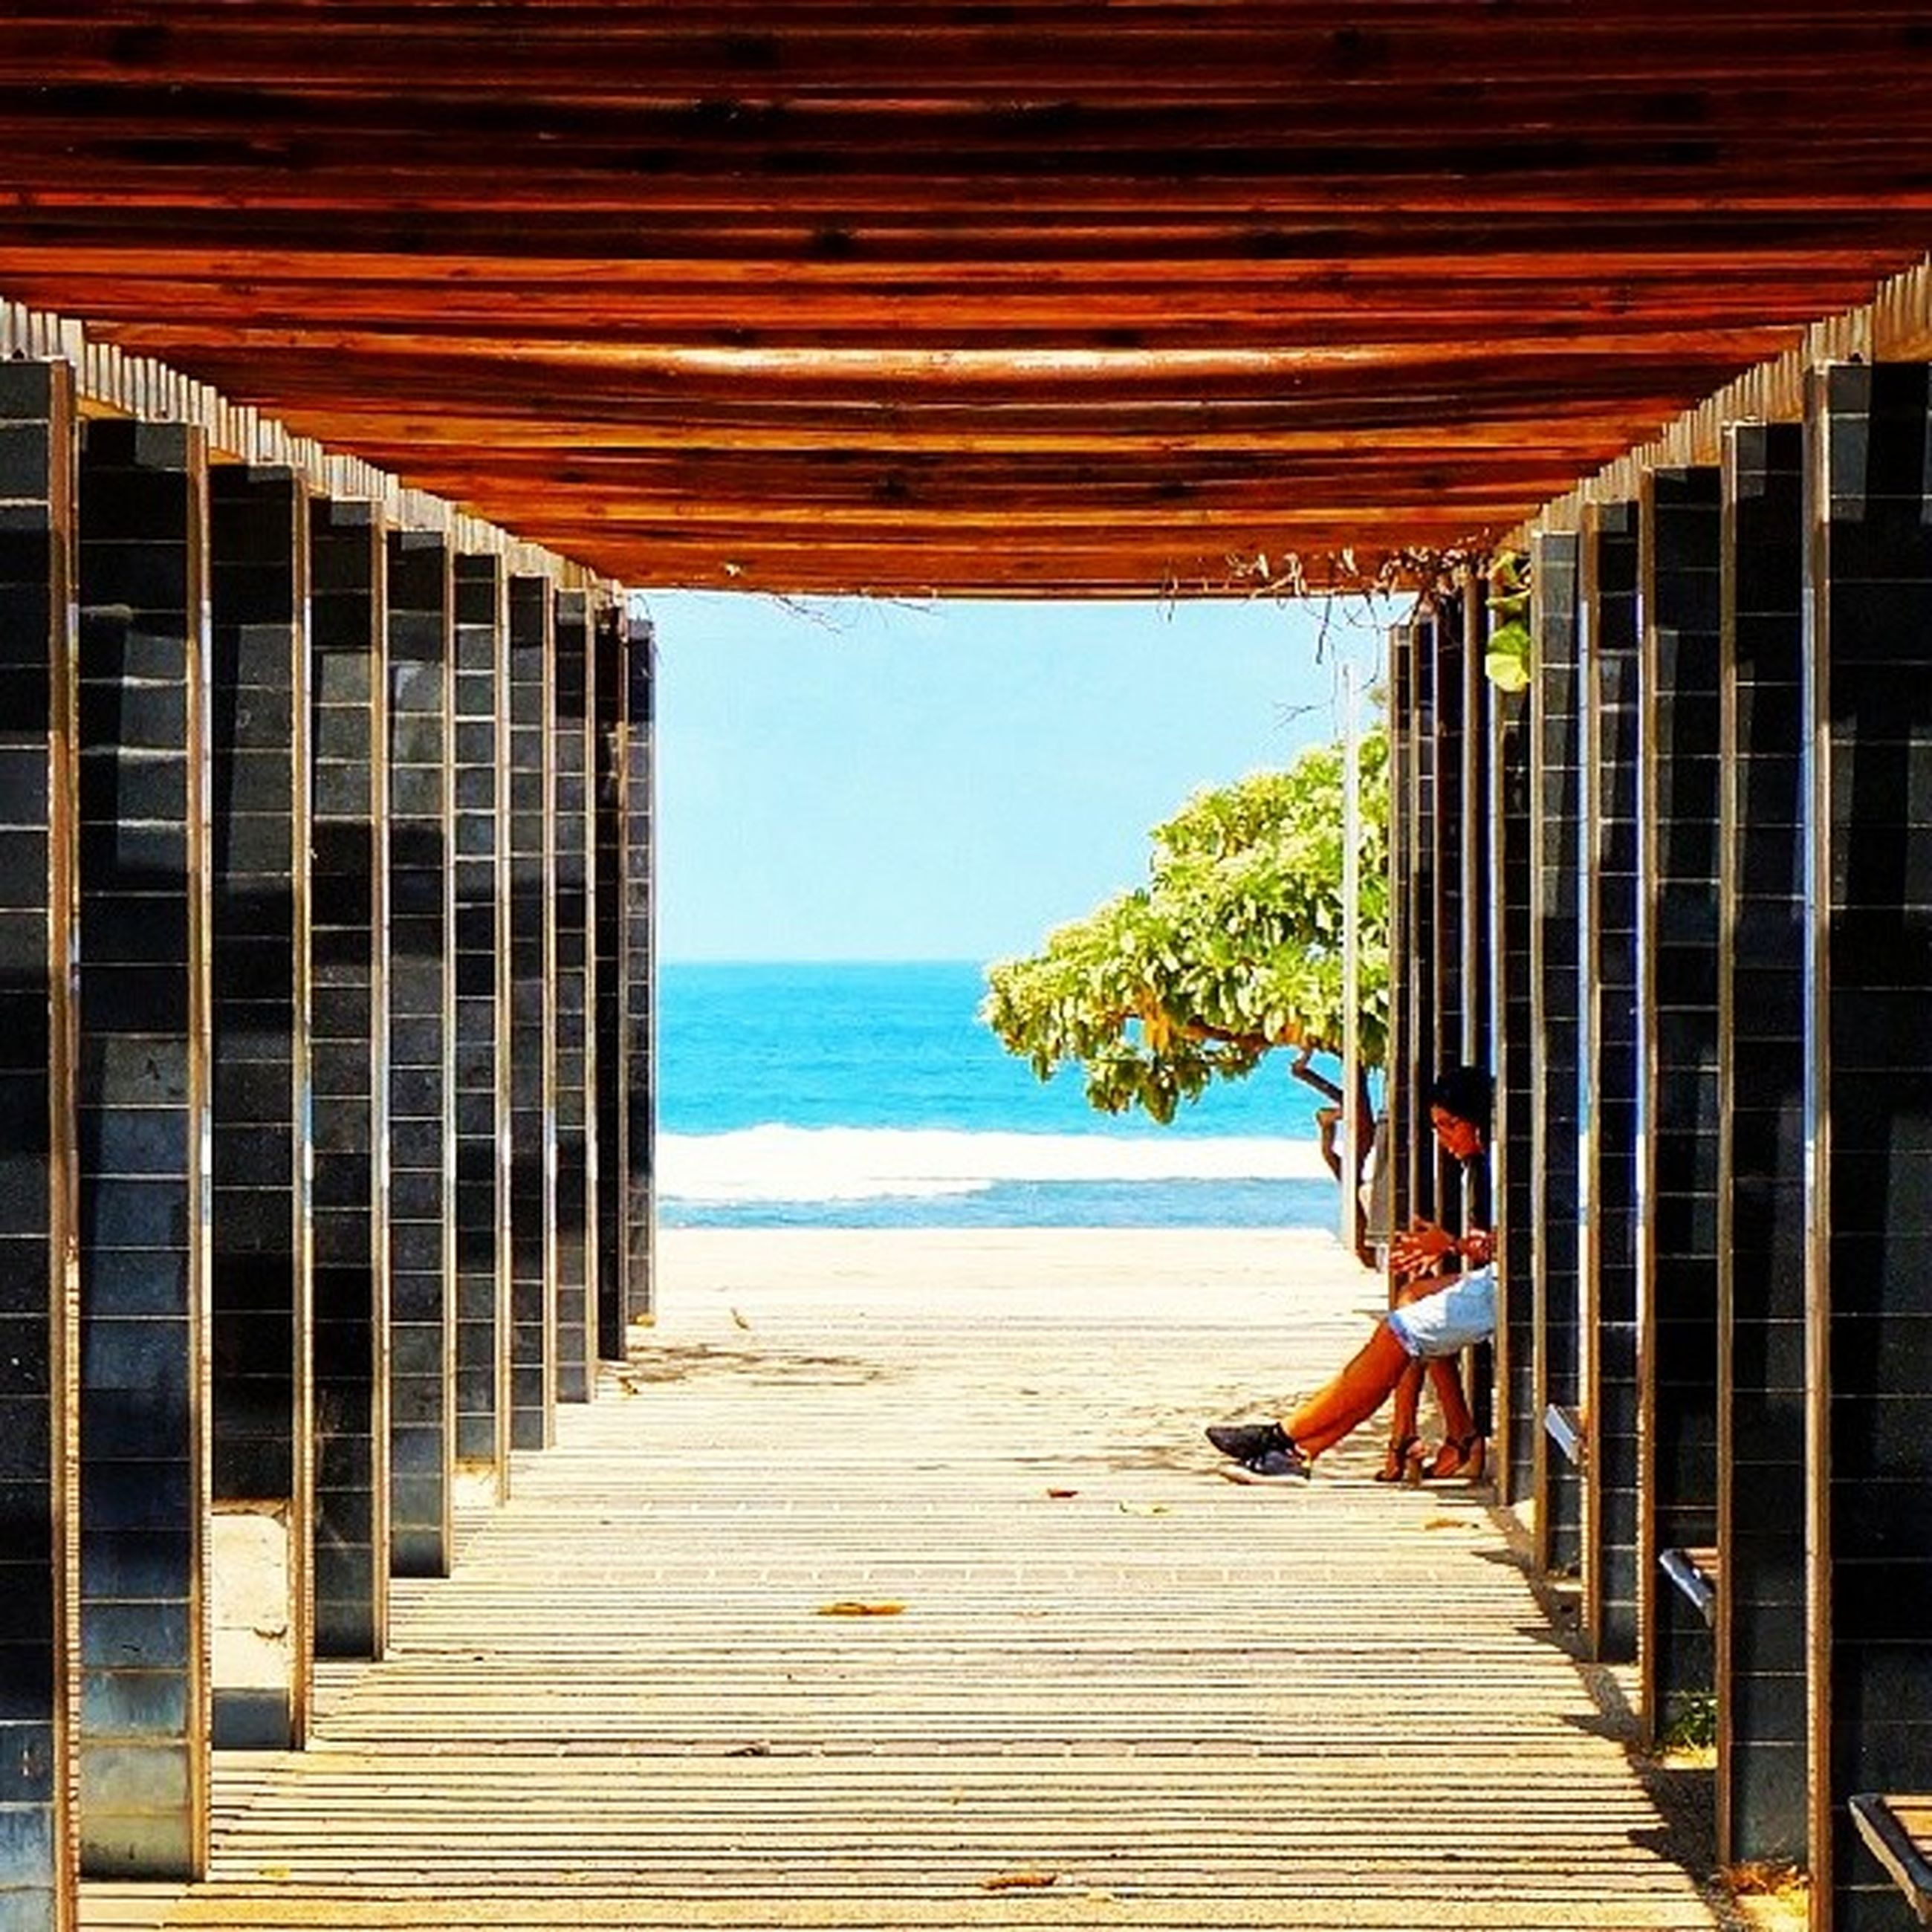 sea, built structure, horizon over water, architecture, the way forward, water, railing, sky, building exterior, beach, wood - material, tranquility, narrow, boardwalk, tranquil scene, blue, pier, scenics, day, nature